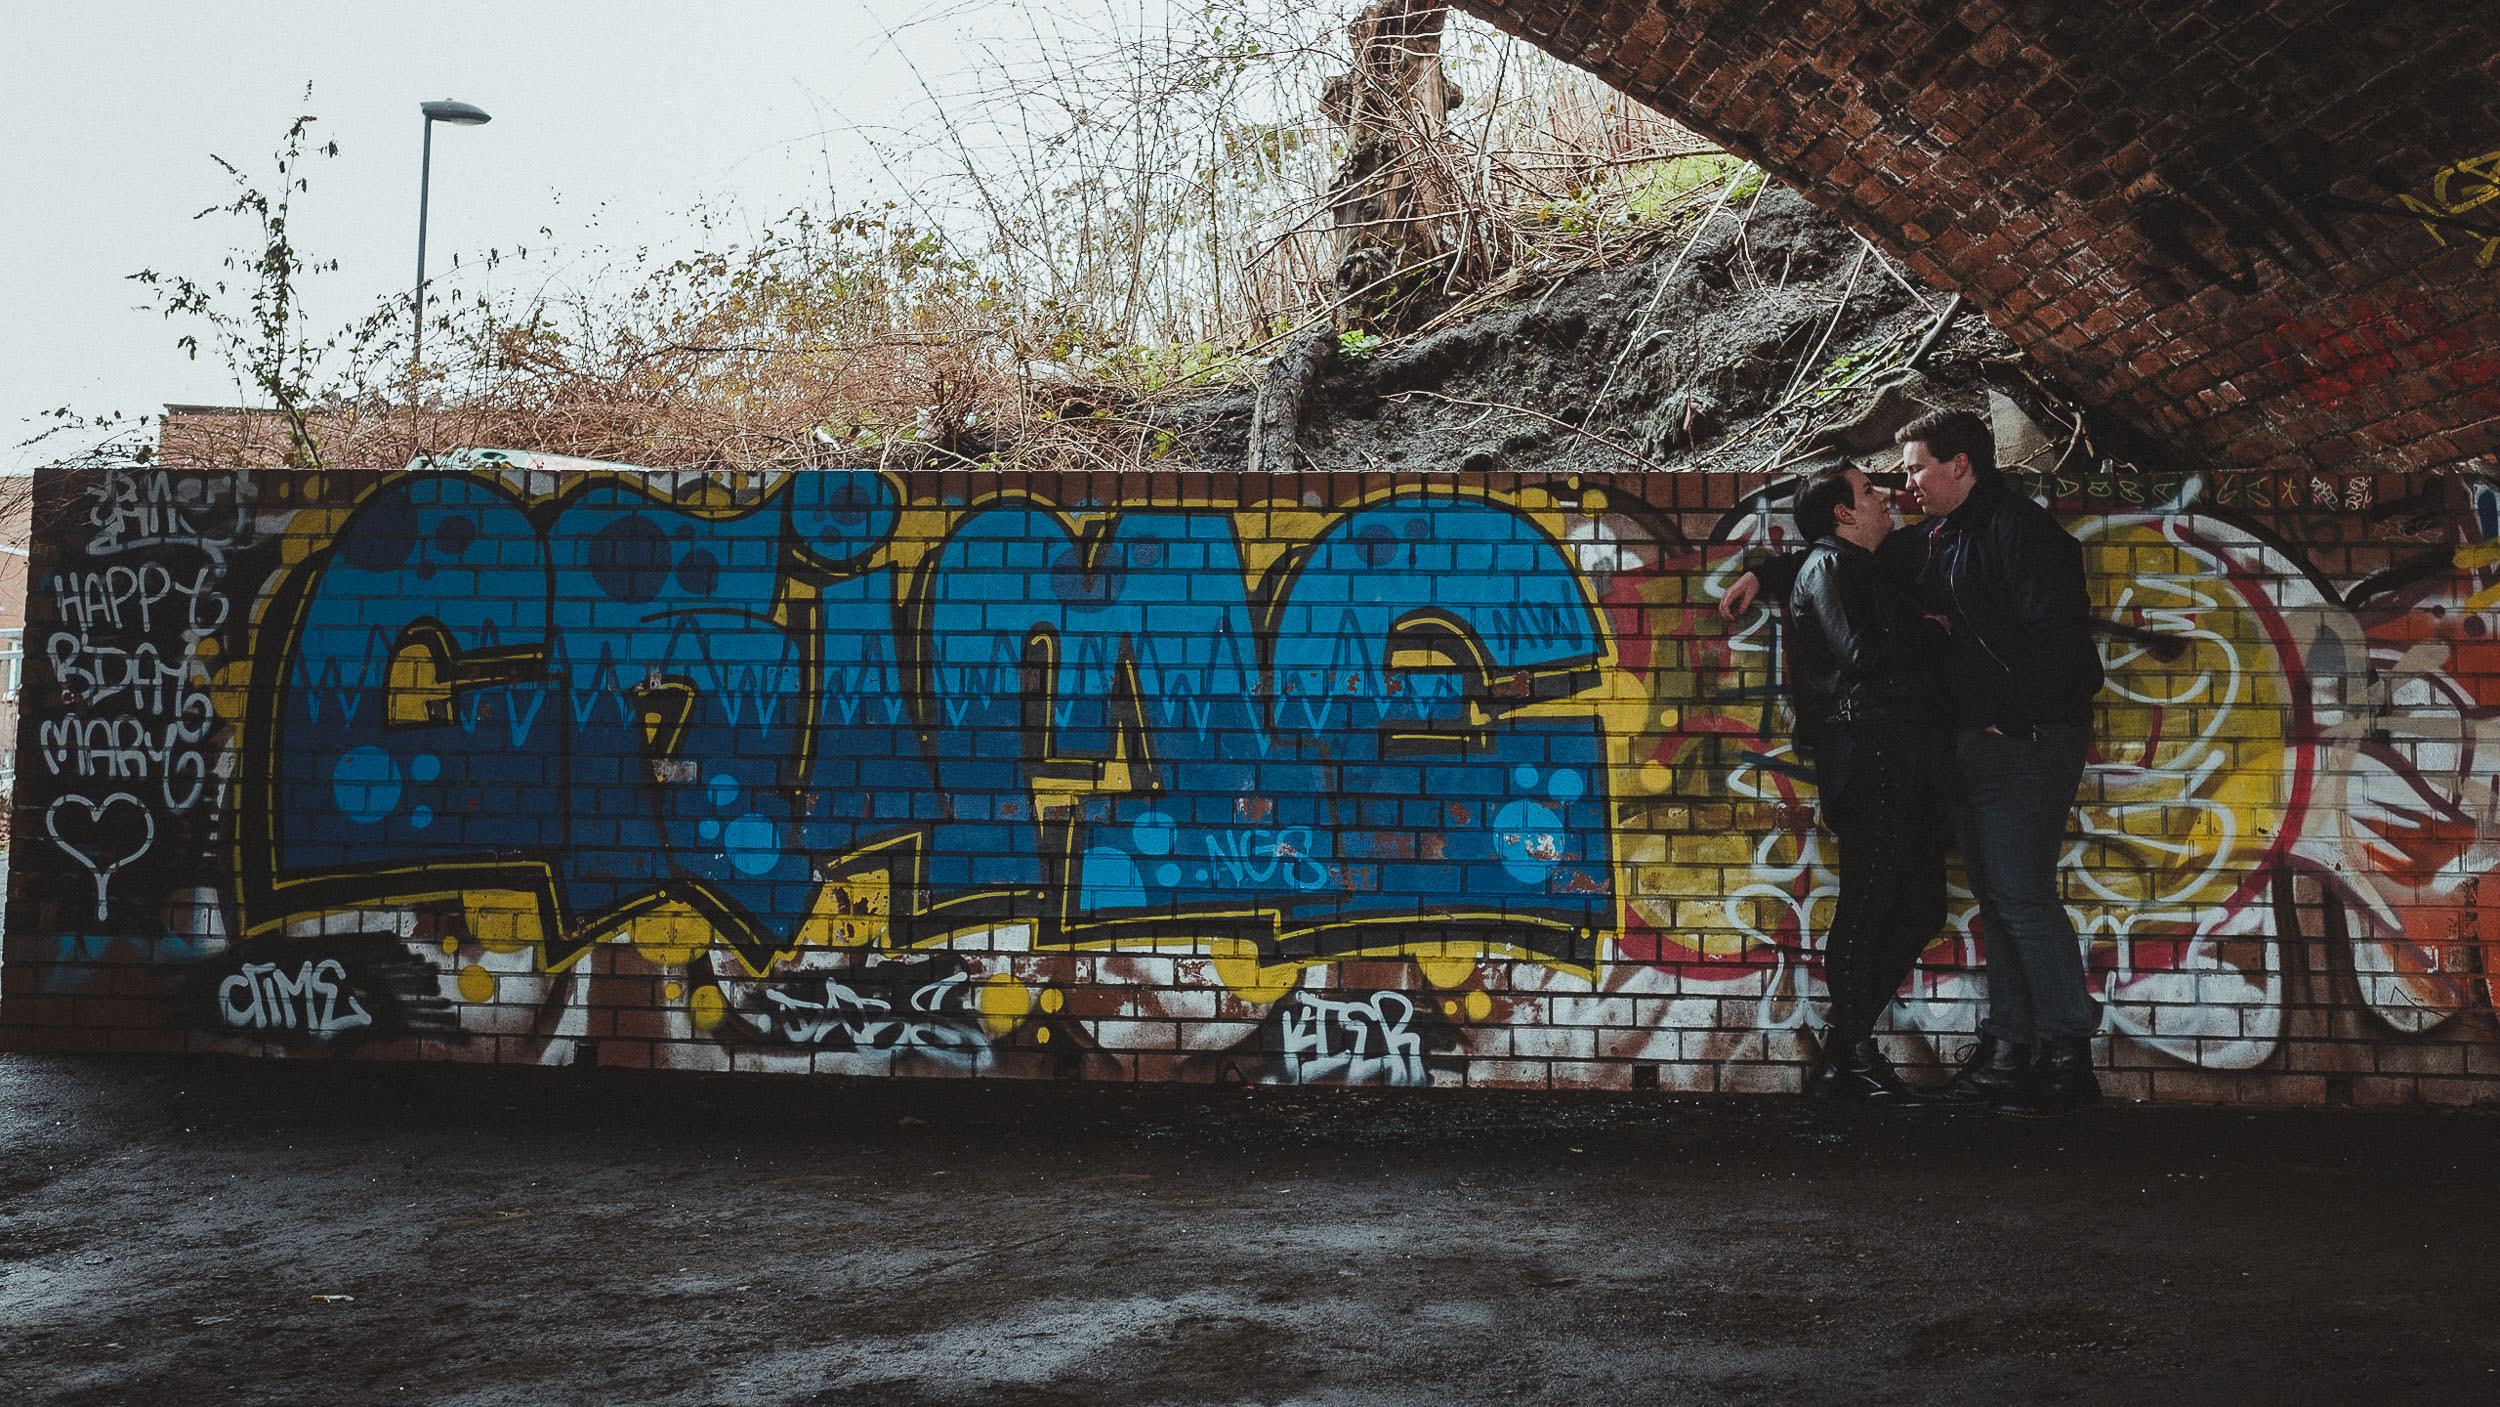 An engaged couple face each other in front of a brick wall covered in graffiti